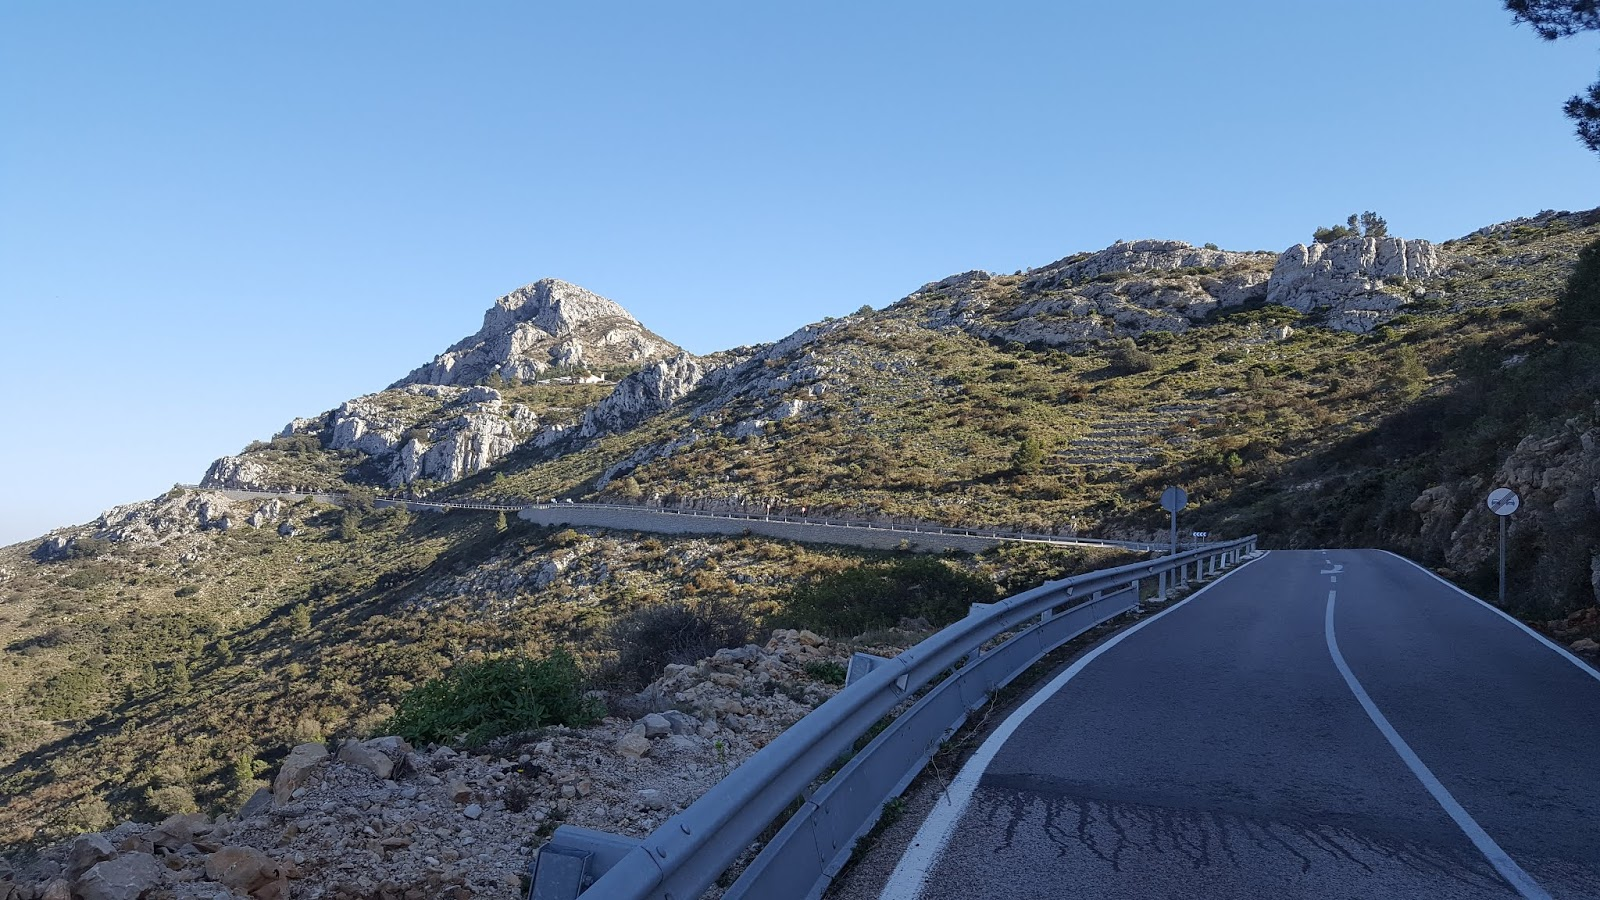 View of the road to the summit of Coll de Rates, Alicante